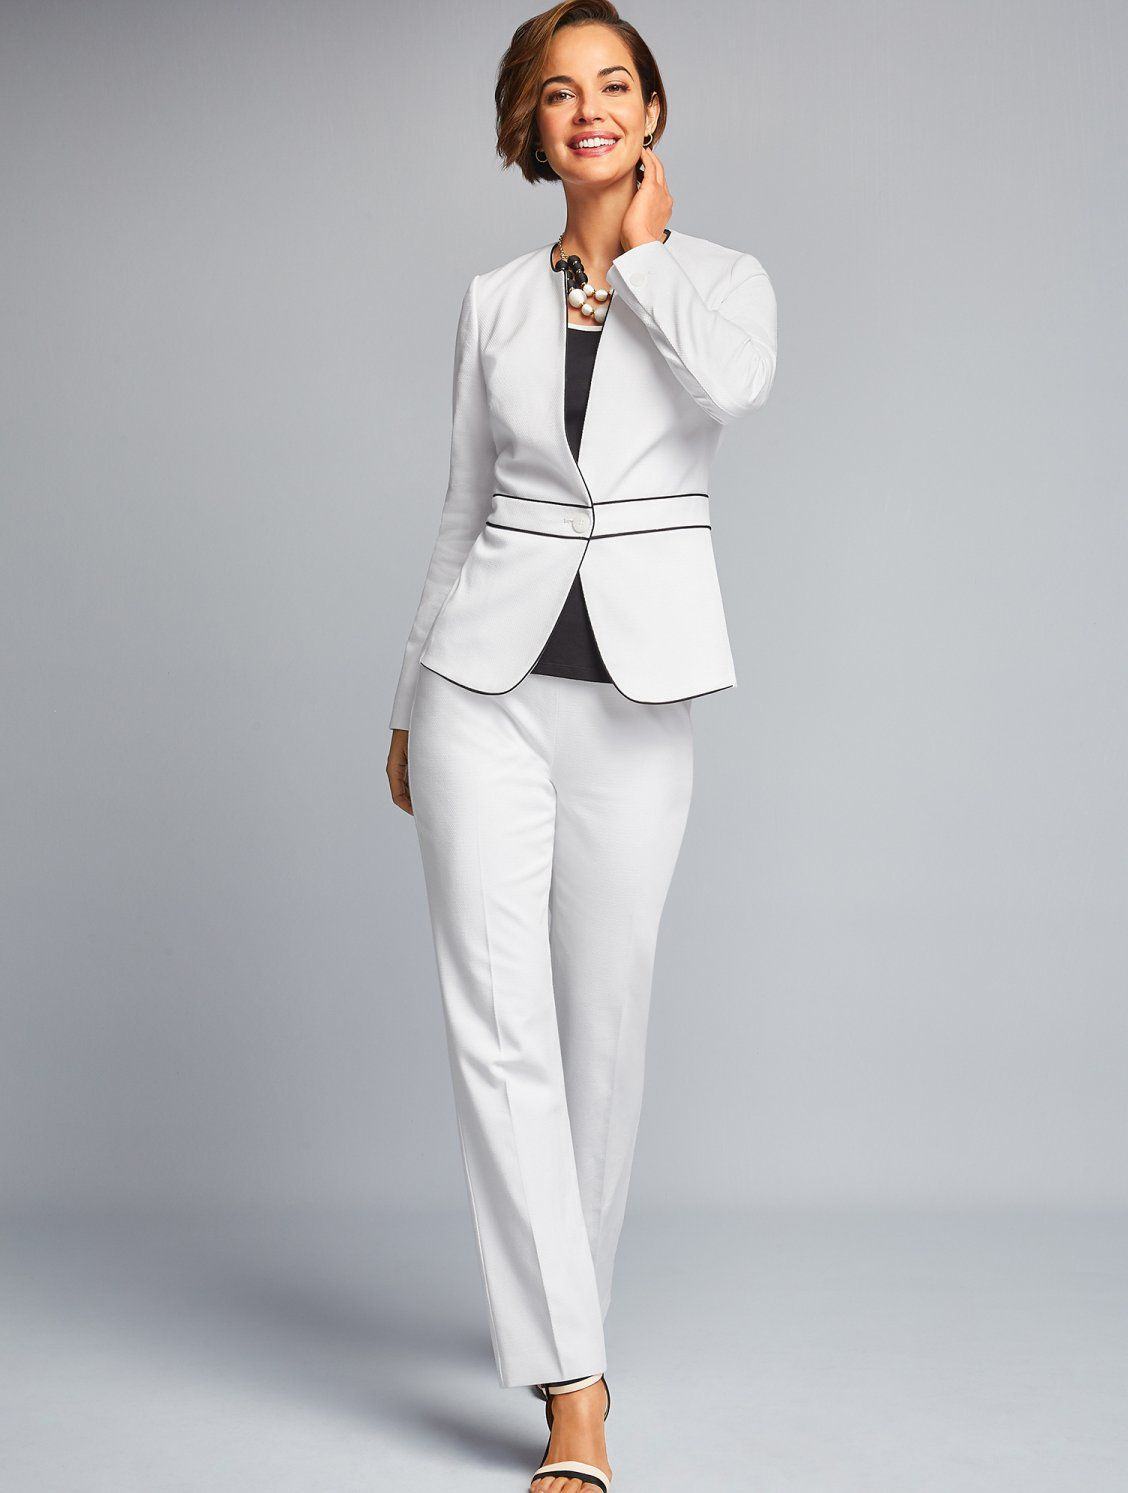 Black Contrast Piping At The Trim And Waist Makes This Pure White Collarless Blazer Feel Special You Ll Office Outfits Pantsuits For Women Womens Dress Suits [ 1493 x 1128 Pixel ]